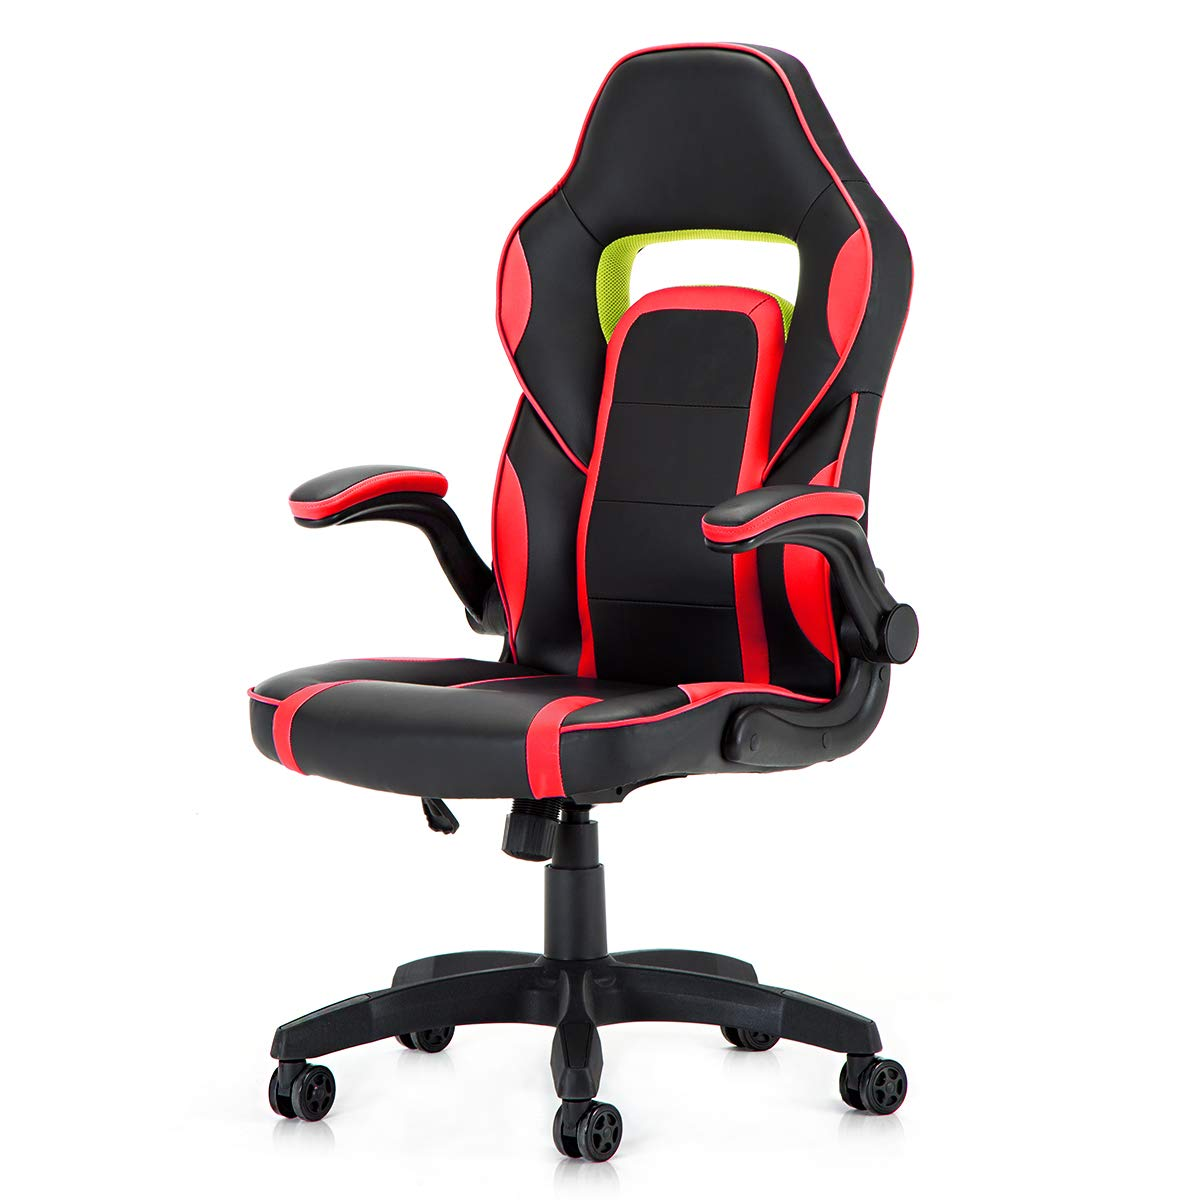 Racing Style PU Leather Gaming Chair - Ergonomic Swivel Computer, Office or Gaming Chair Desk Chair HOT (RED) by Seatingplus